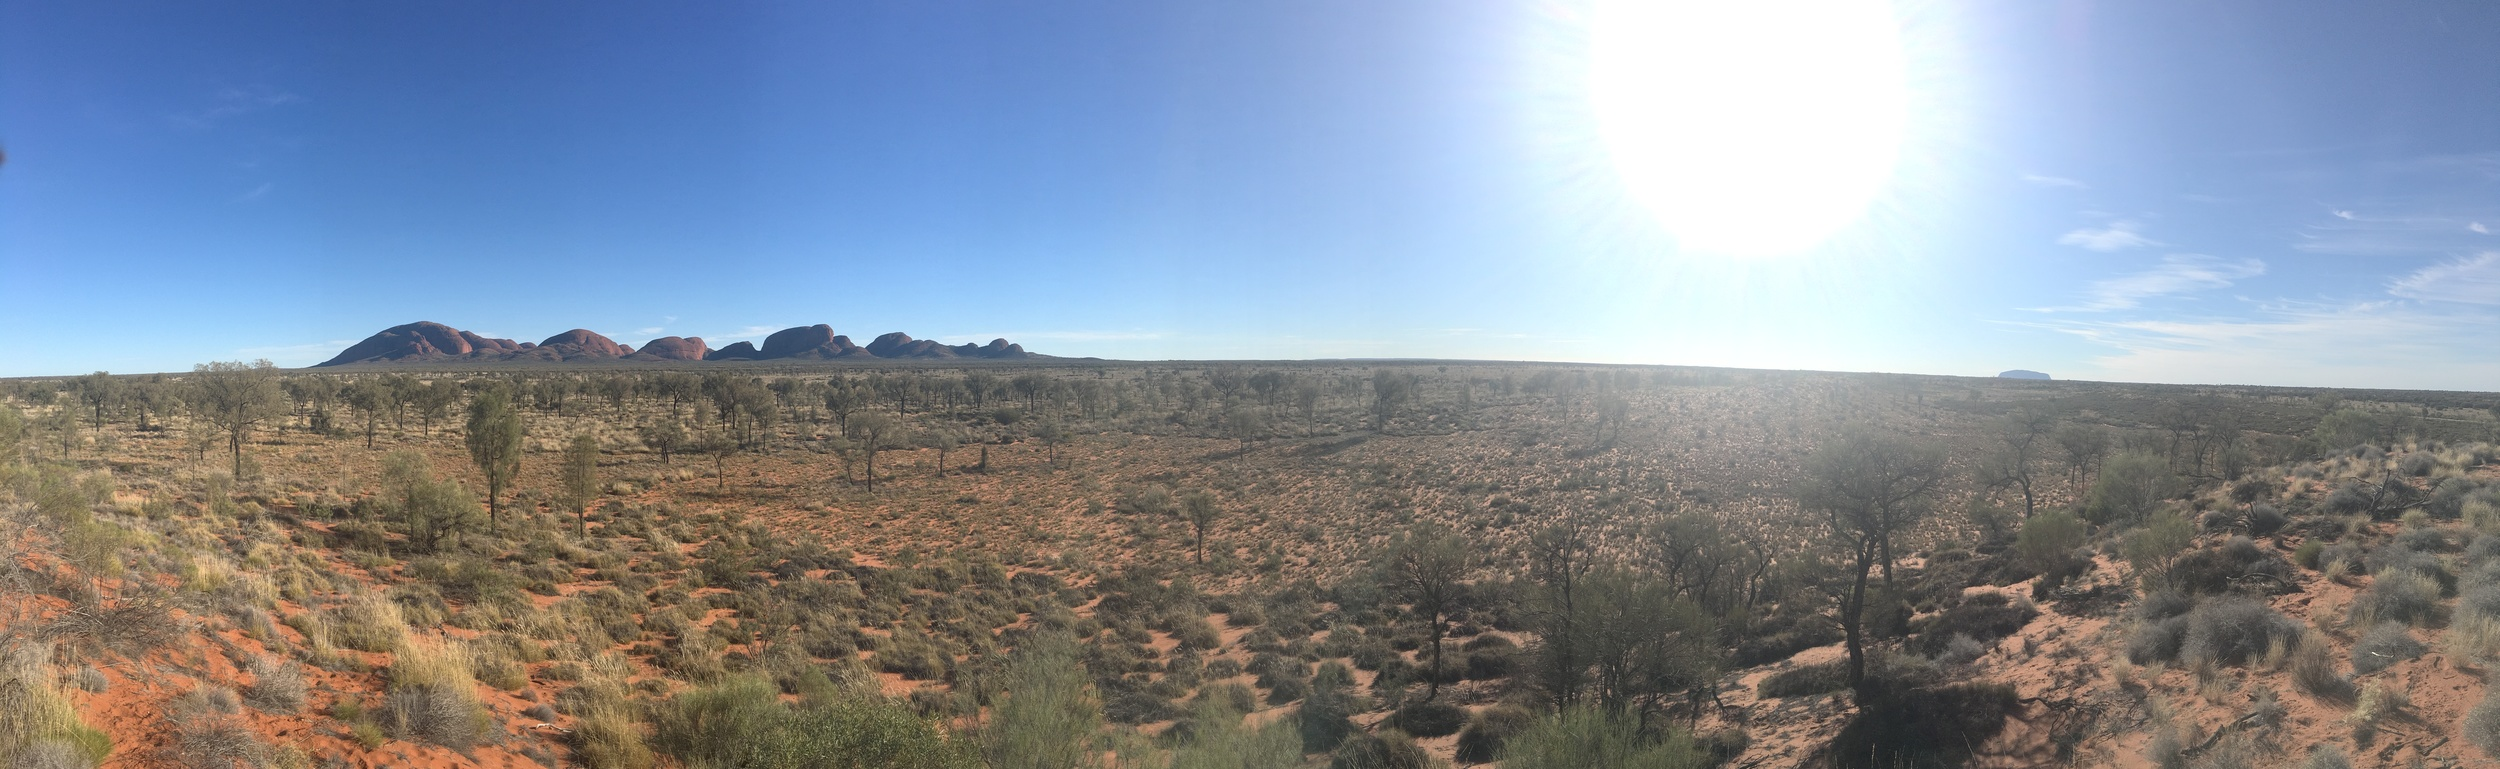 Kata Tjuta and Uluru